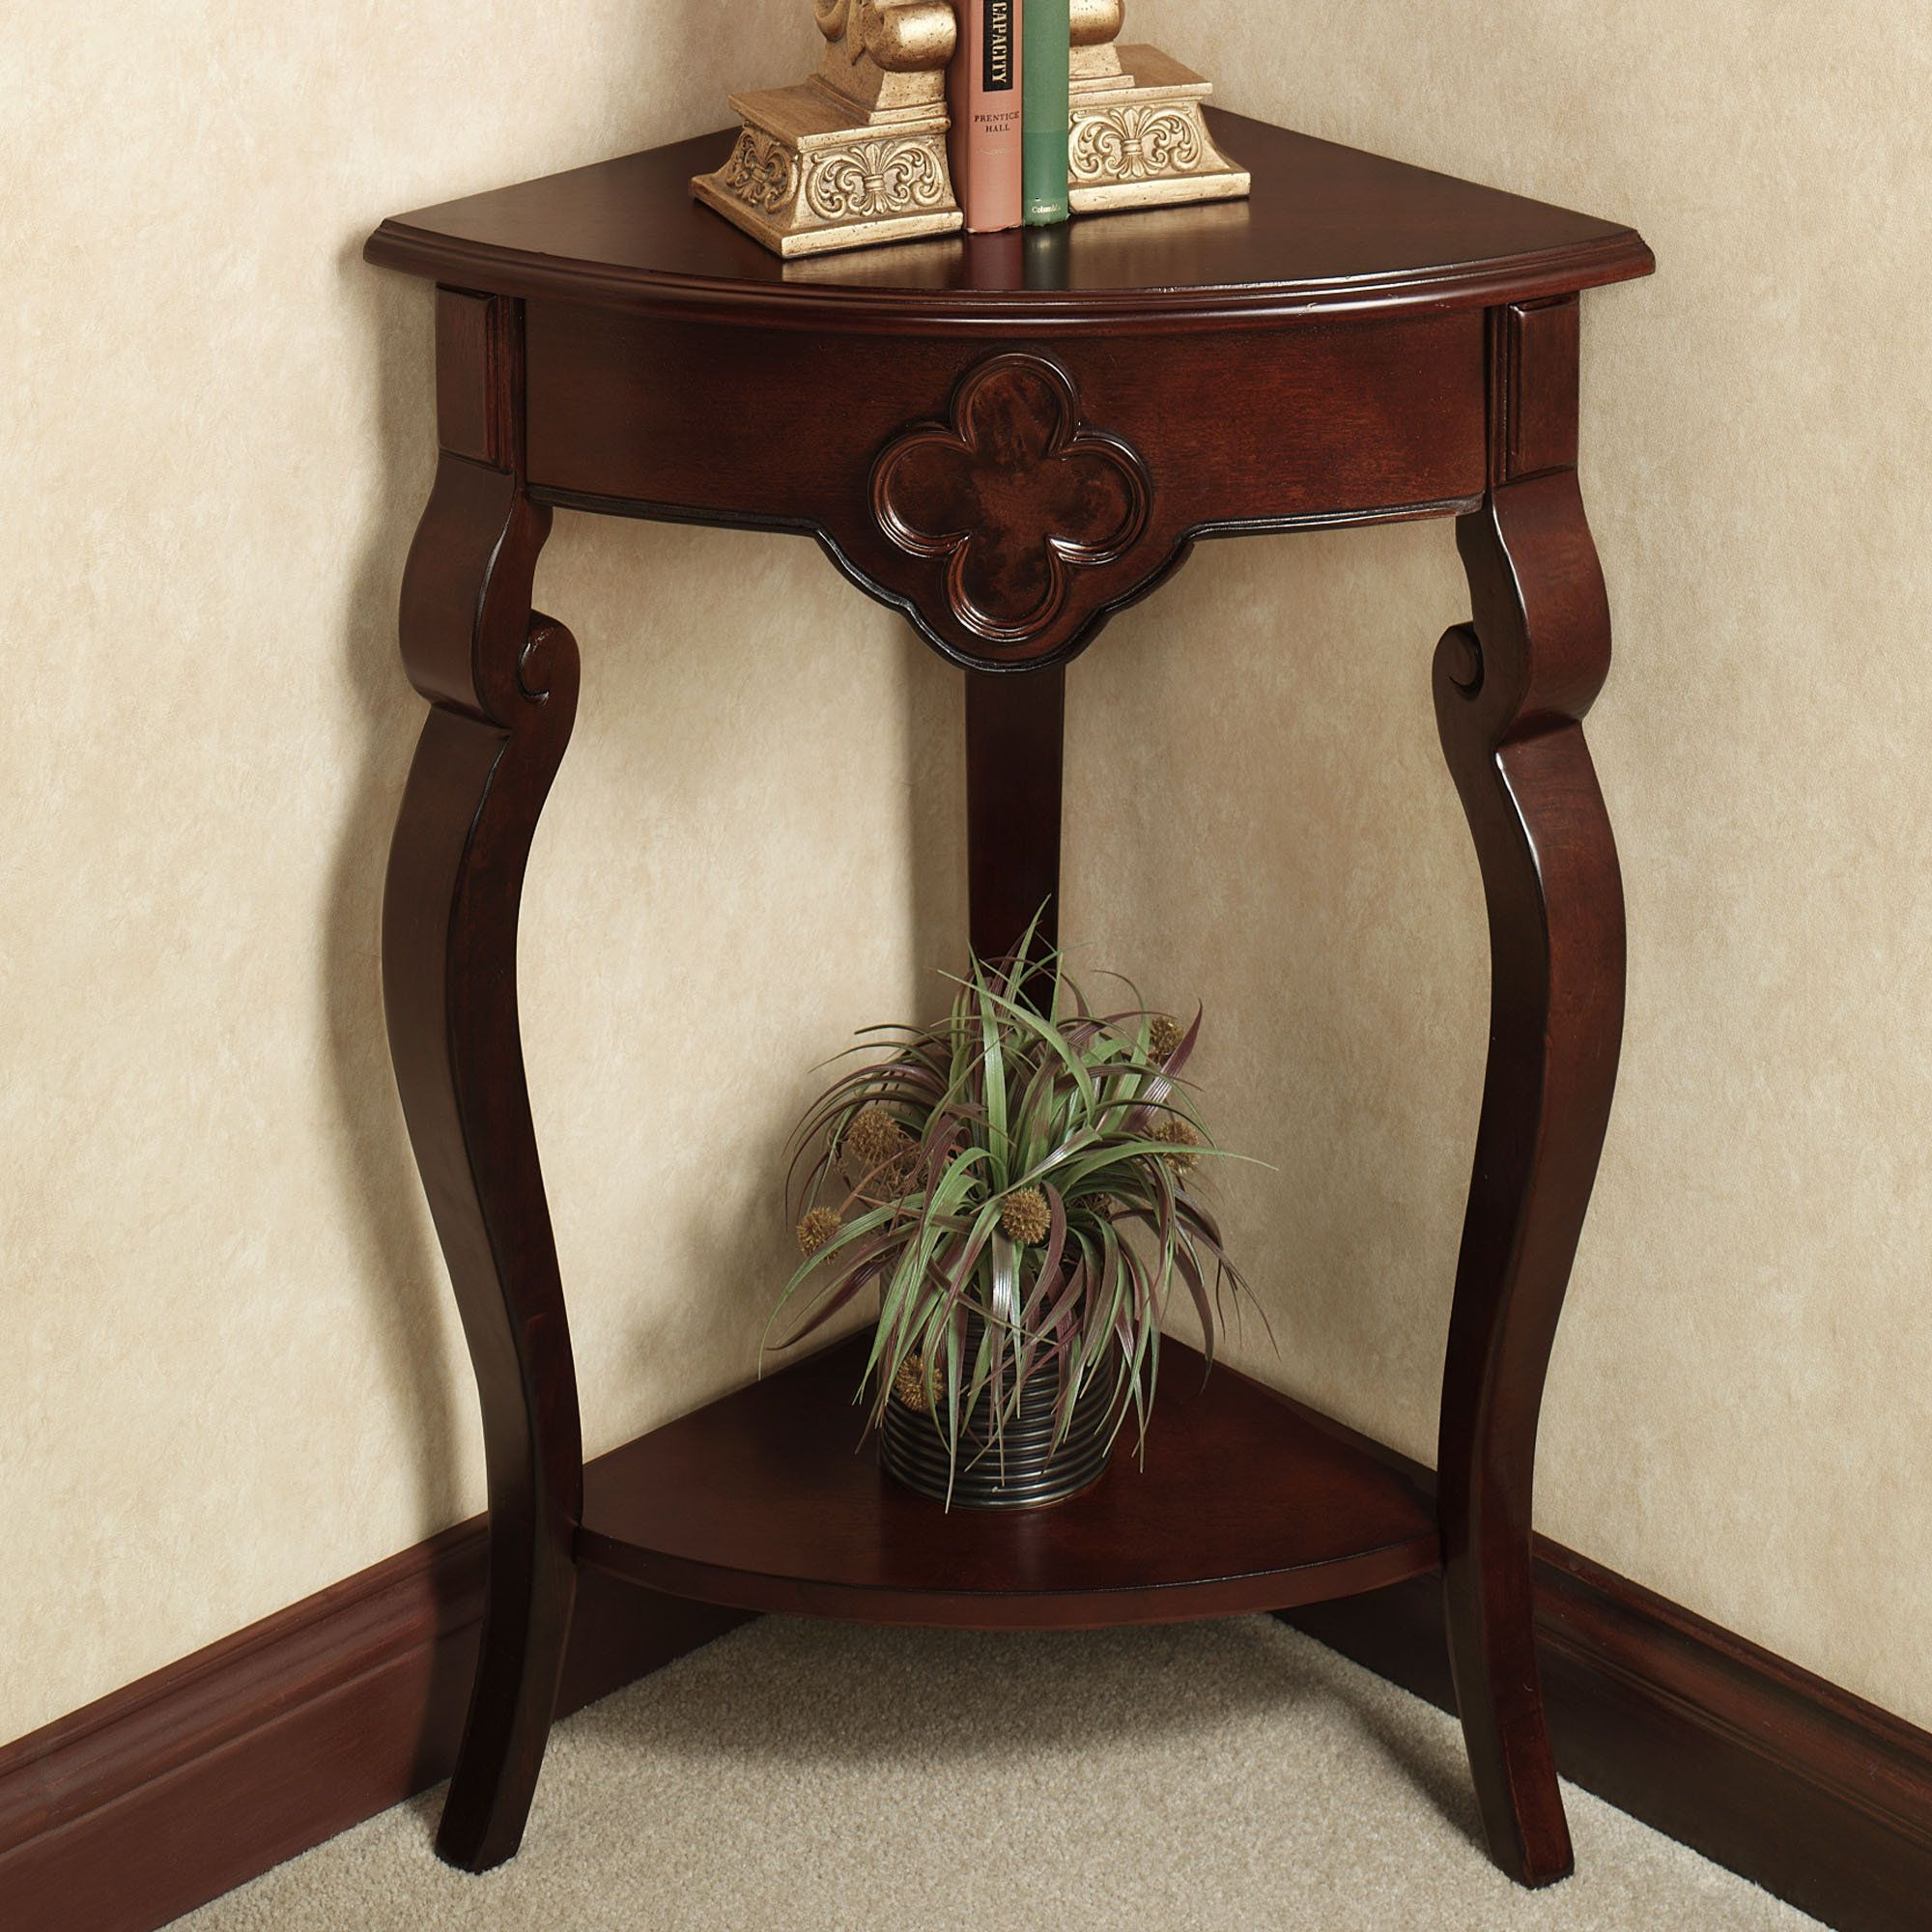 kingscourt corner accent table from touch class home for dining room deck furniture set console mirrors cool lamps hammered copper top end tables hourglass lighthouse nautical